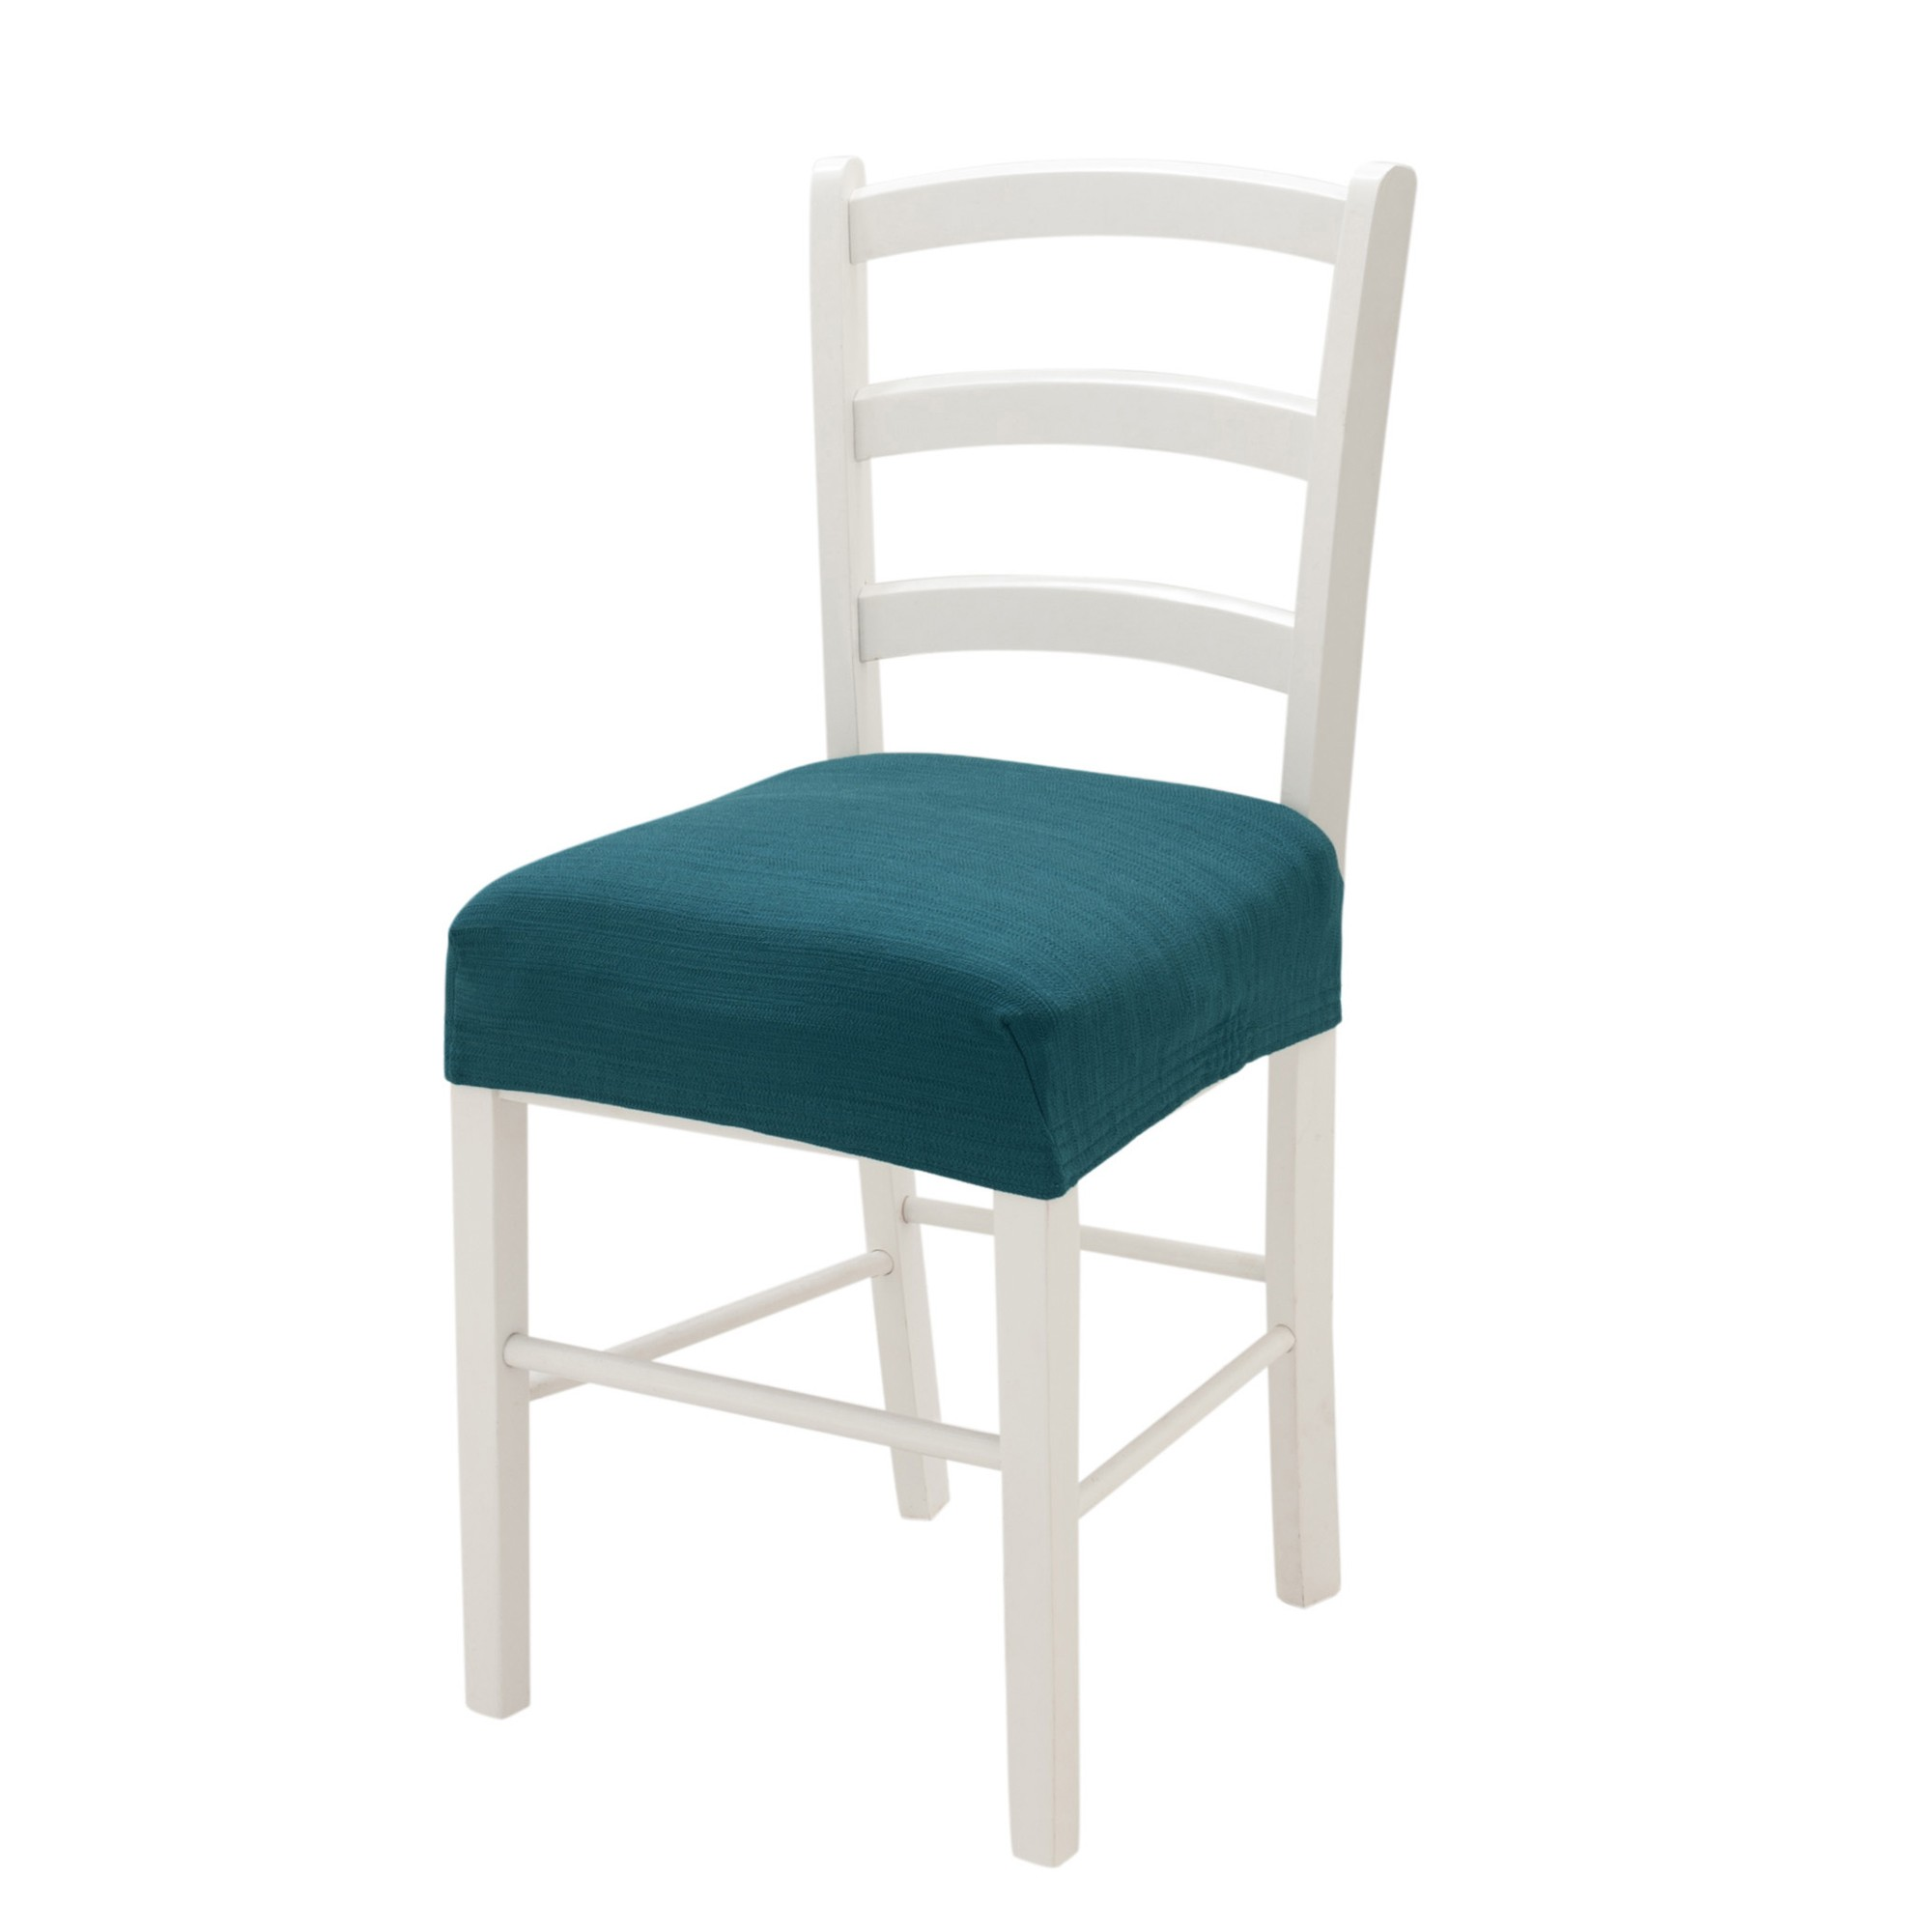 Housse Extensible Chaise Housse Chaise Extensible Blancheporte